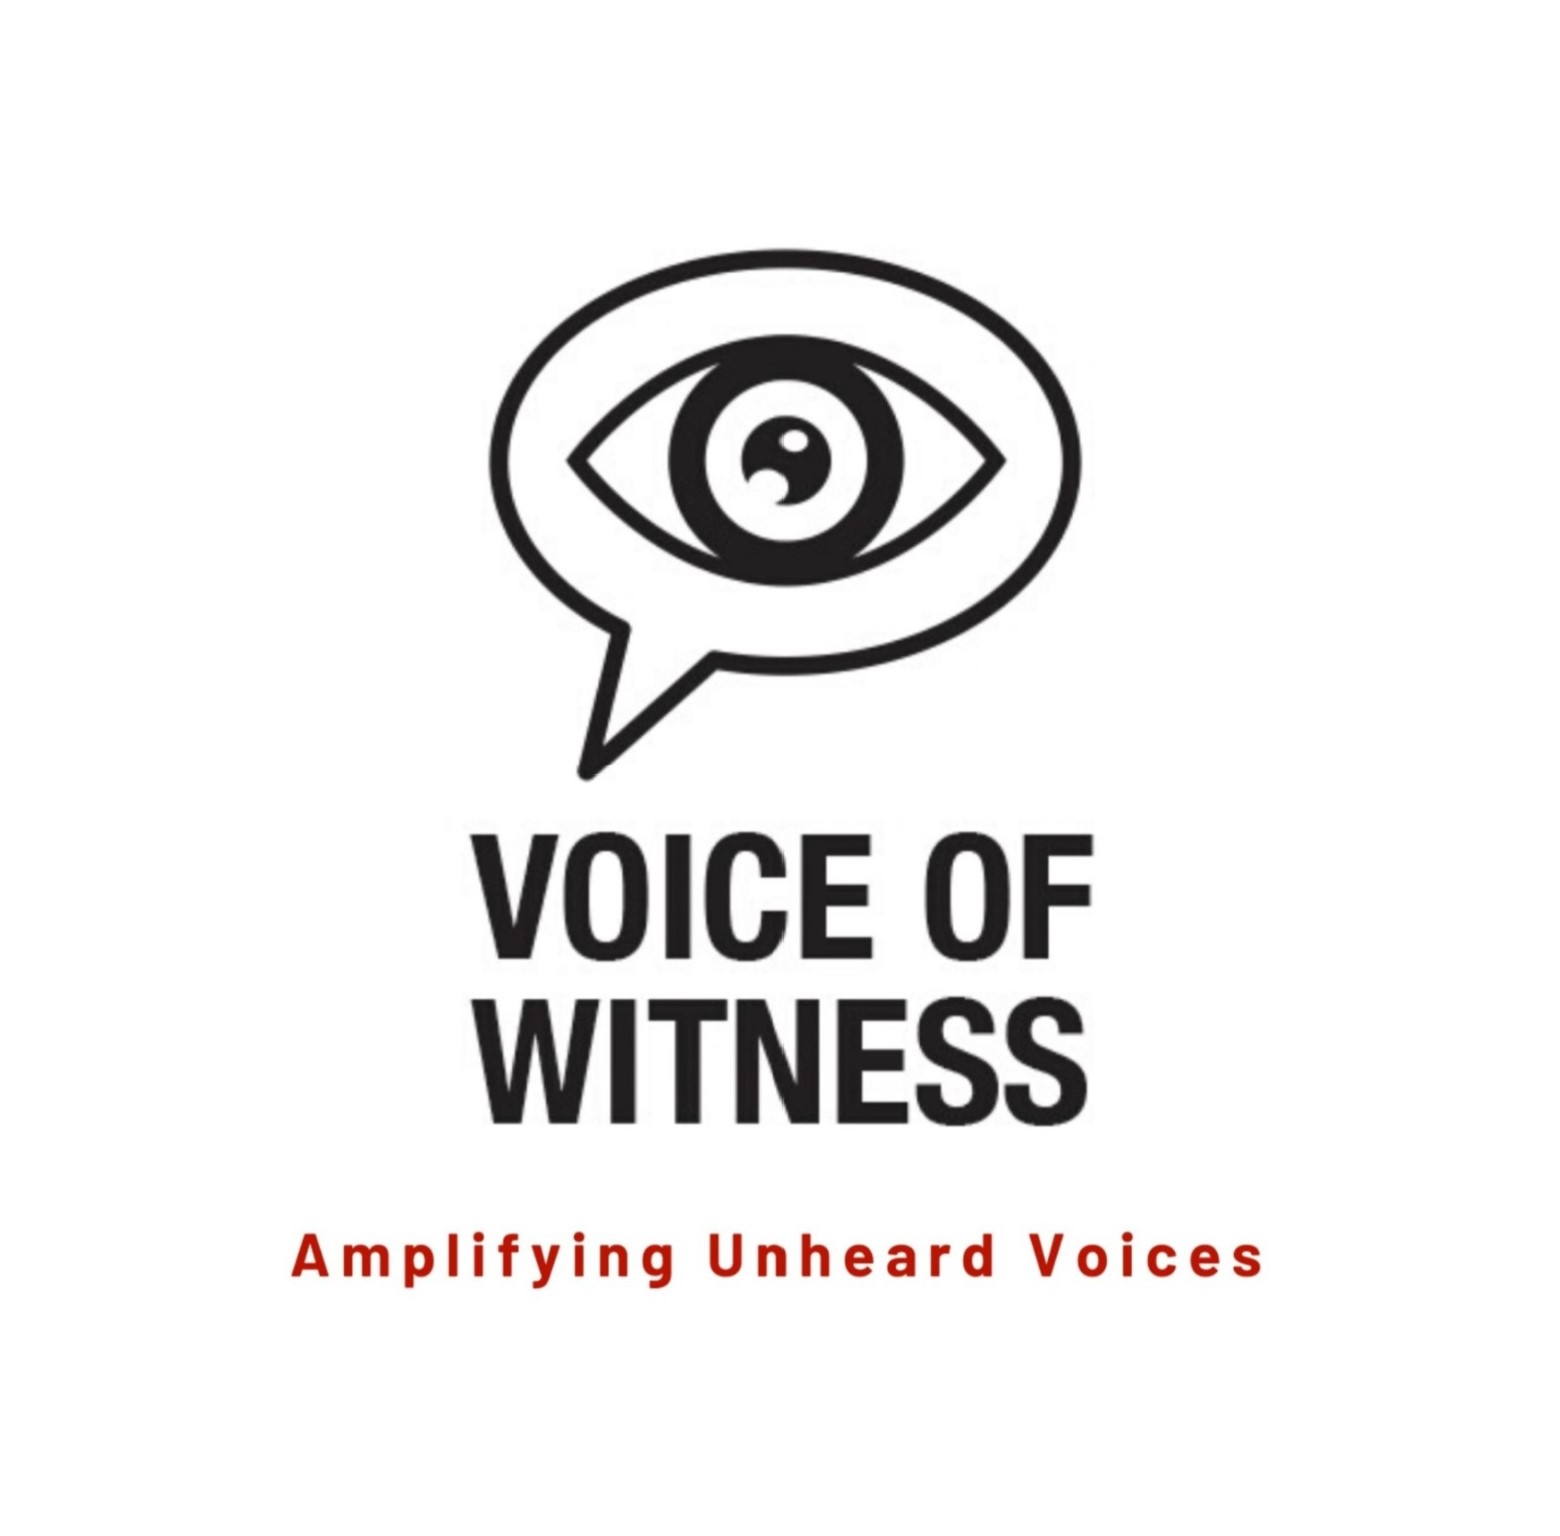 Voice of Witness